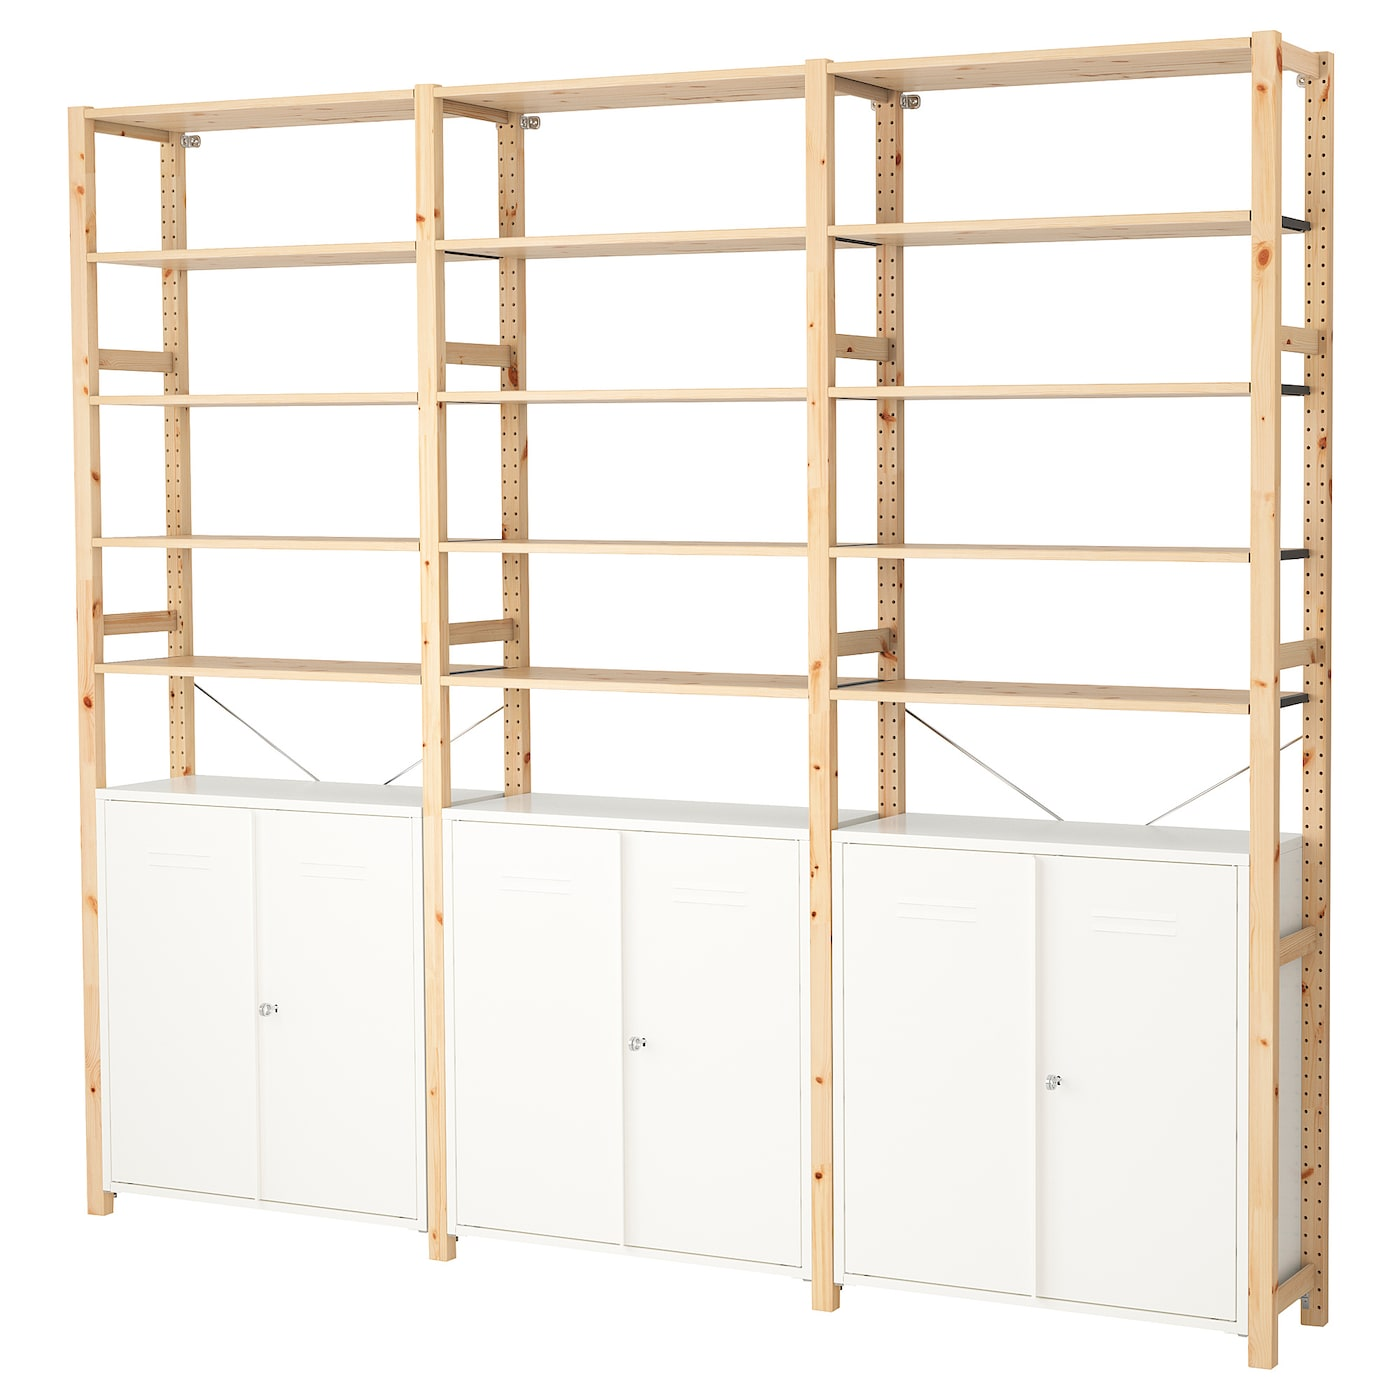 h shelf categories home inch d en depot w p and cabinet organization the kitchen x storage canada